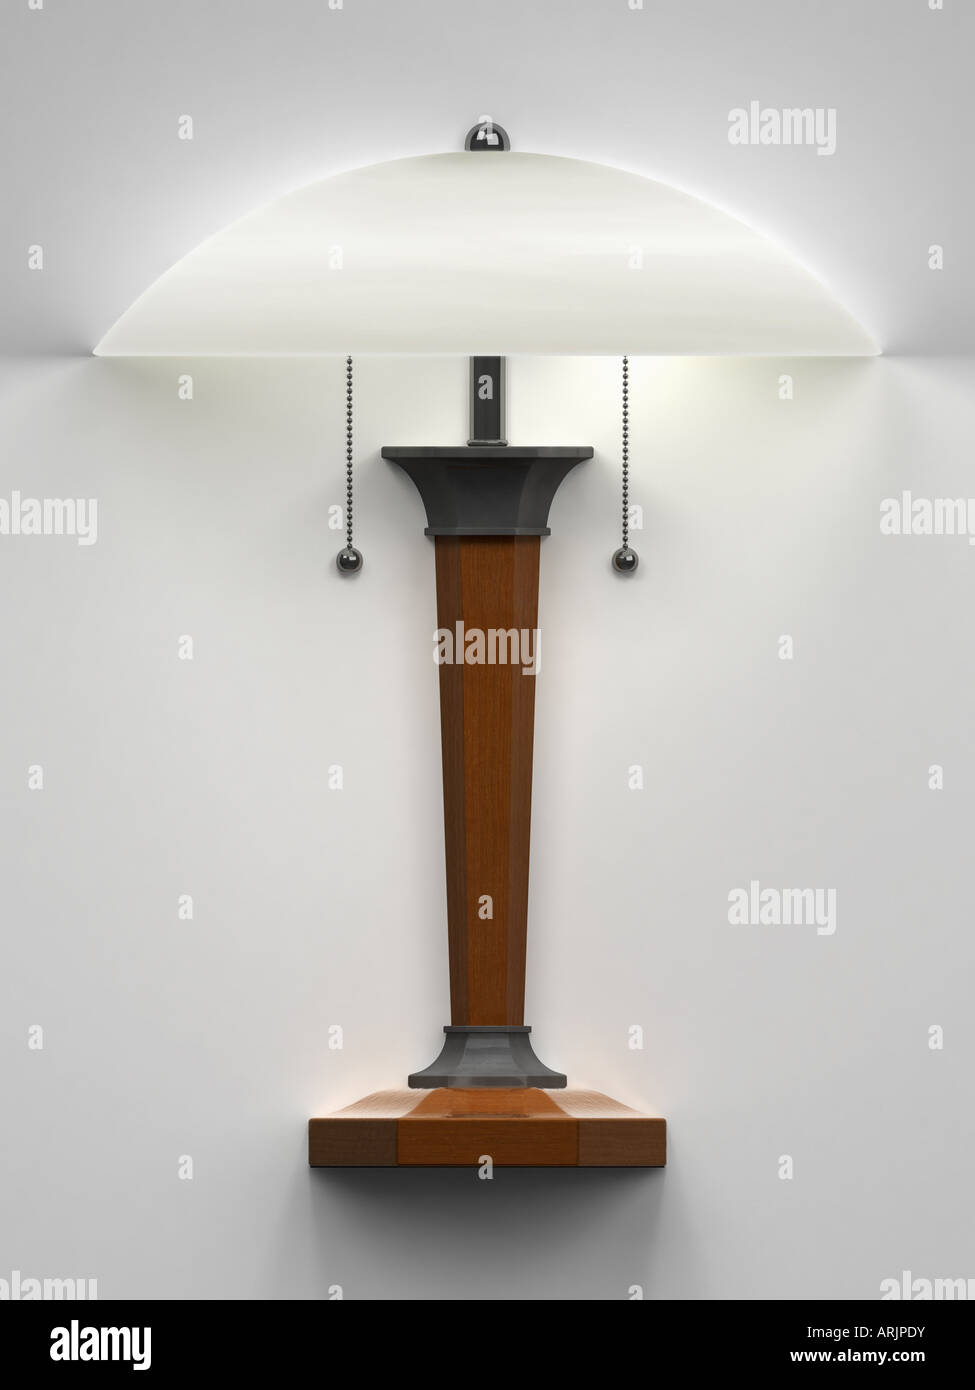 Table lamp on the wall Stock Photo